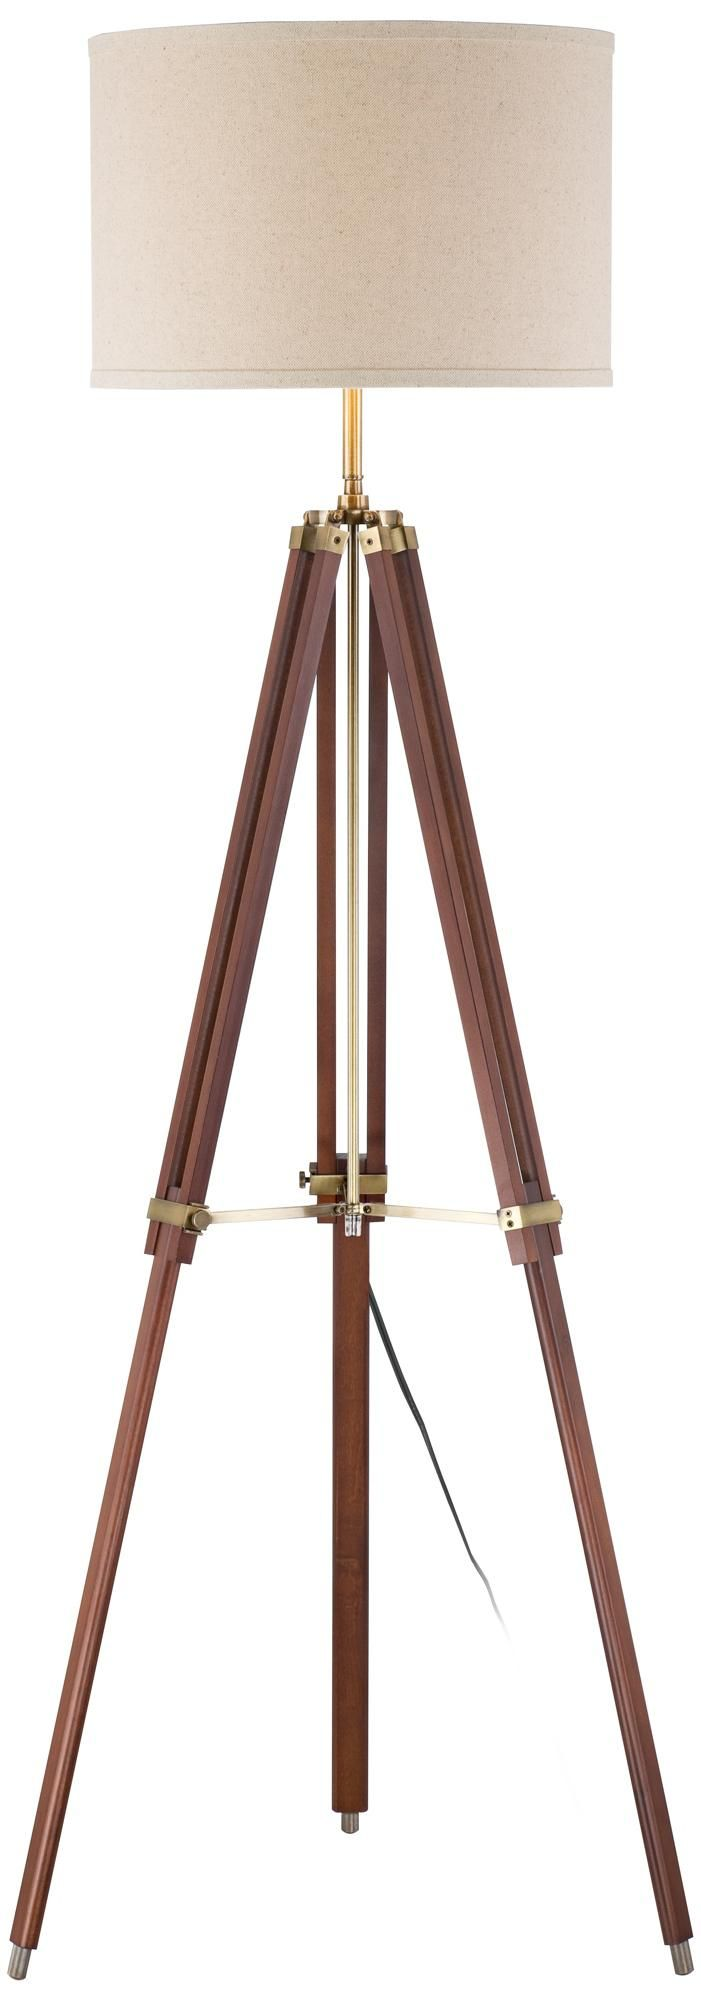 Cherry Finish Wood Surveyor Tripod Floor Lamp | LampsPlus.com